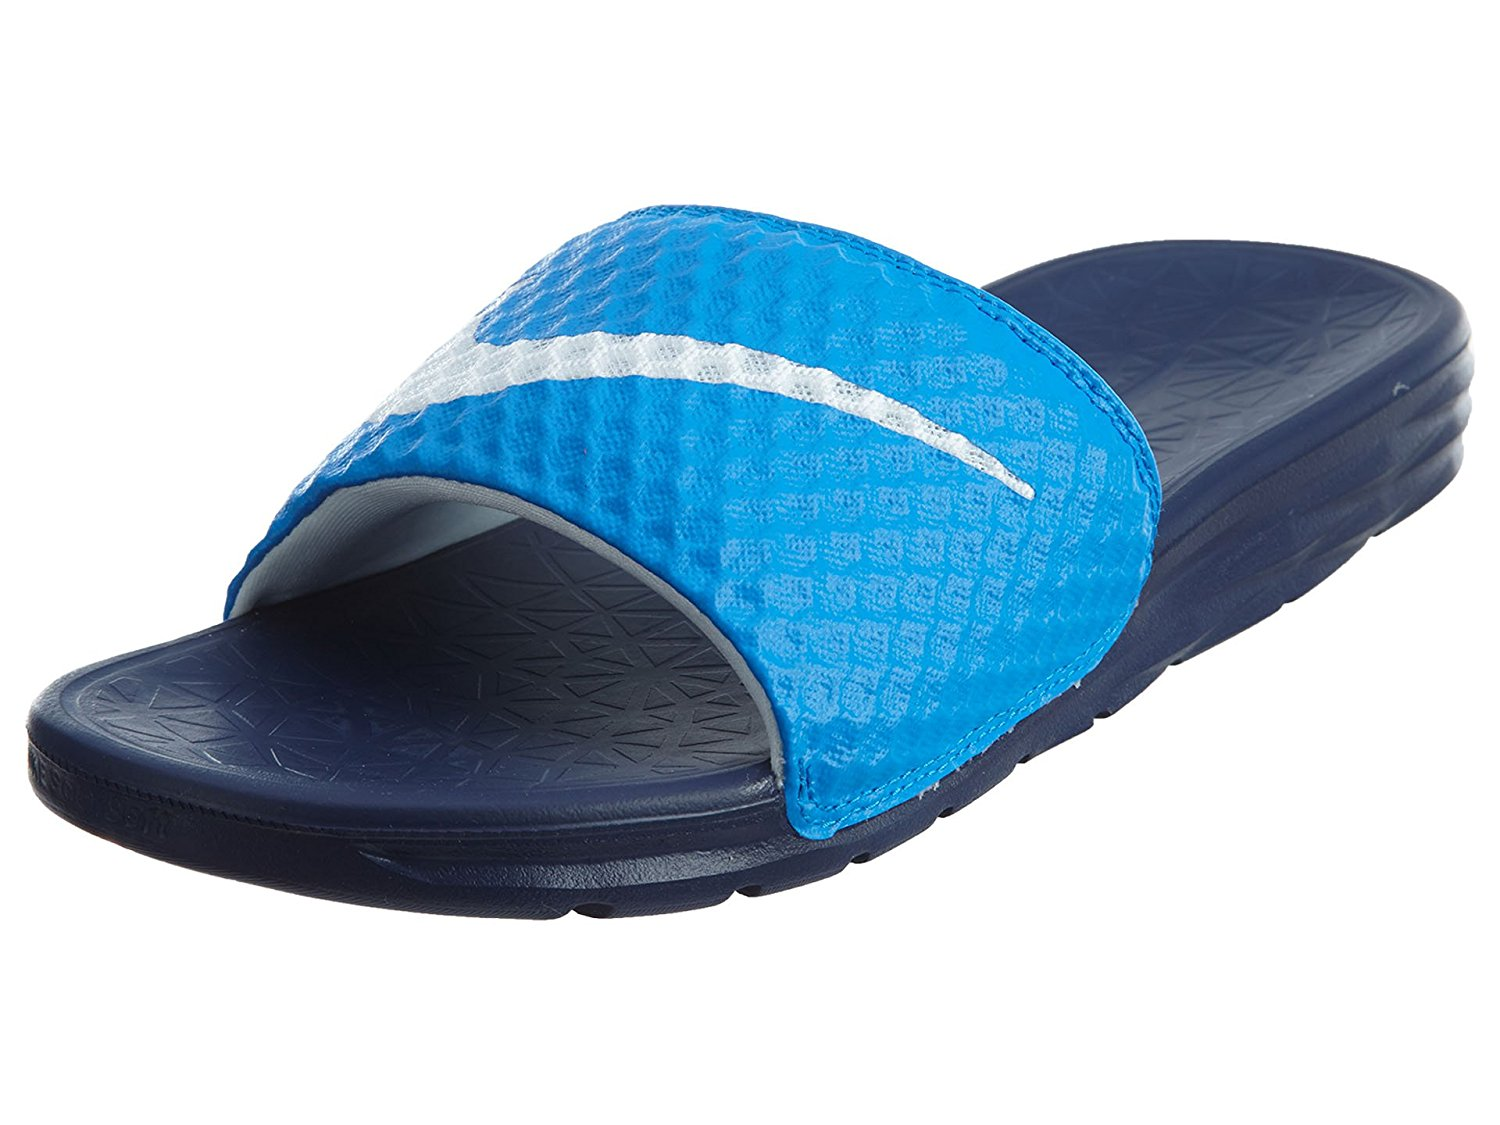 64fe73f4b Get Quotations · NIKE Men s Benassi Solarsoft Slide Sandal